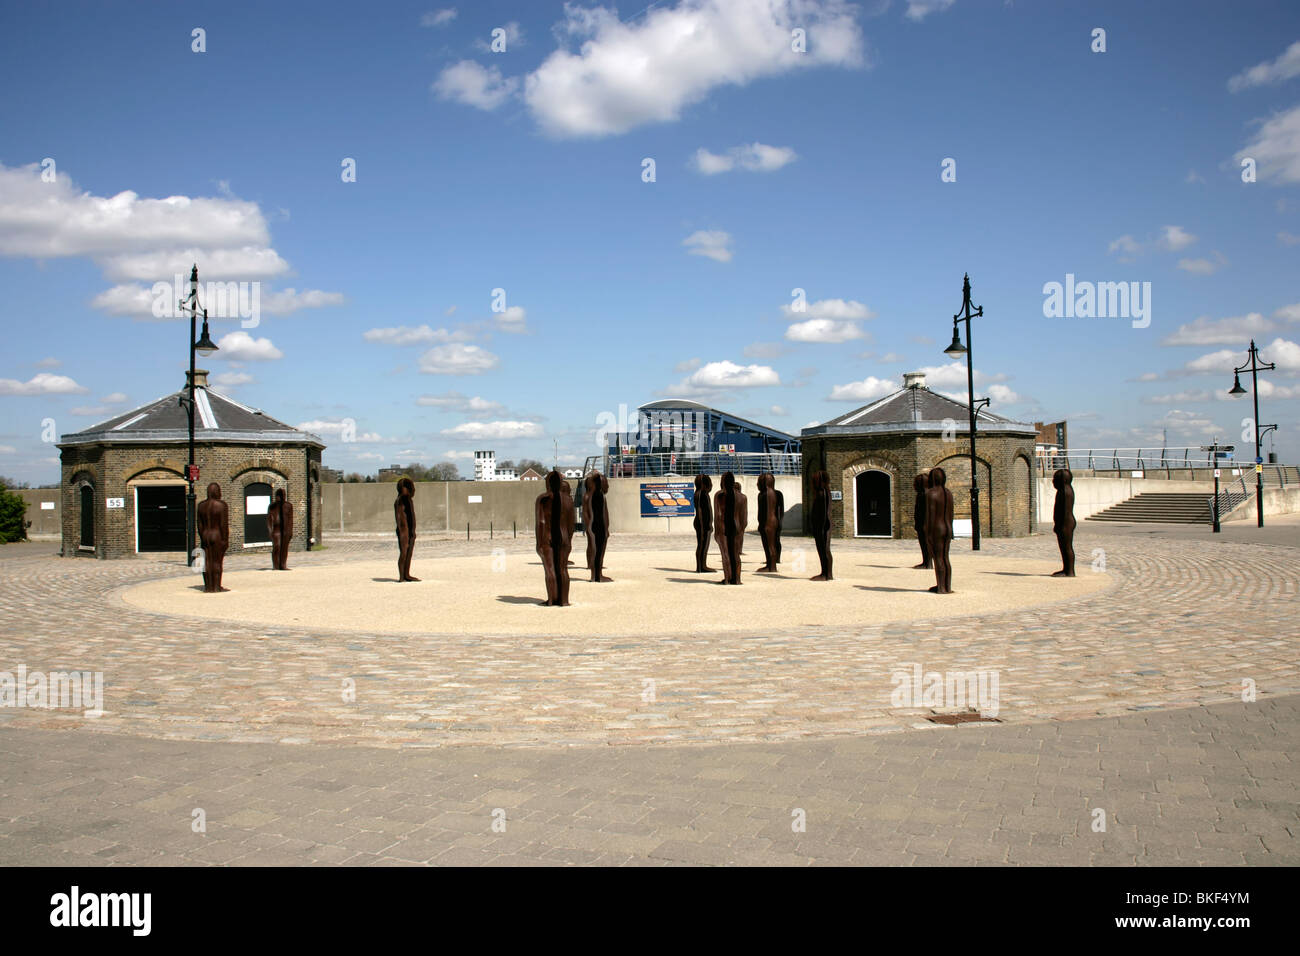 Peter Burke's cast iron statues on the waterfront at Royal Woolwich Arsenal, southeast London, UK Stock Photo